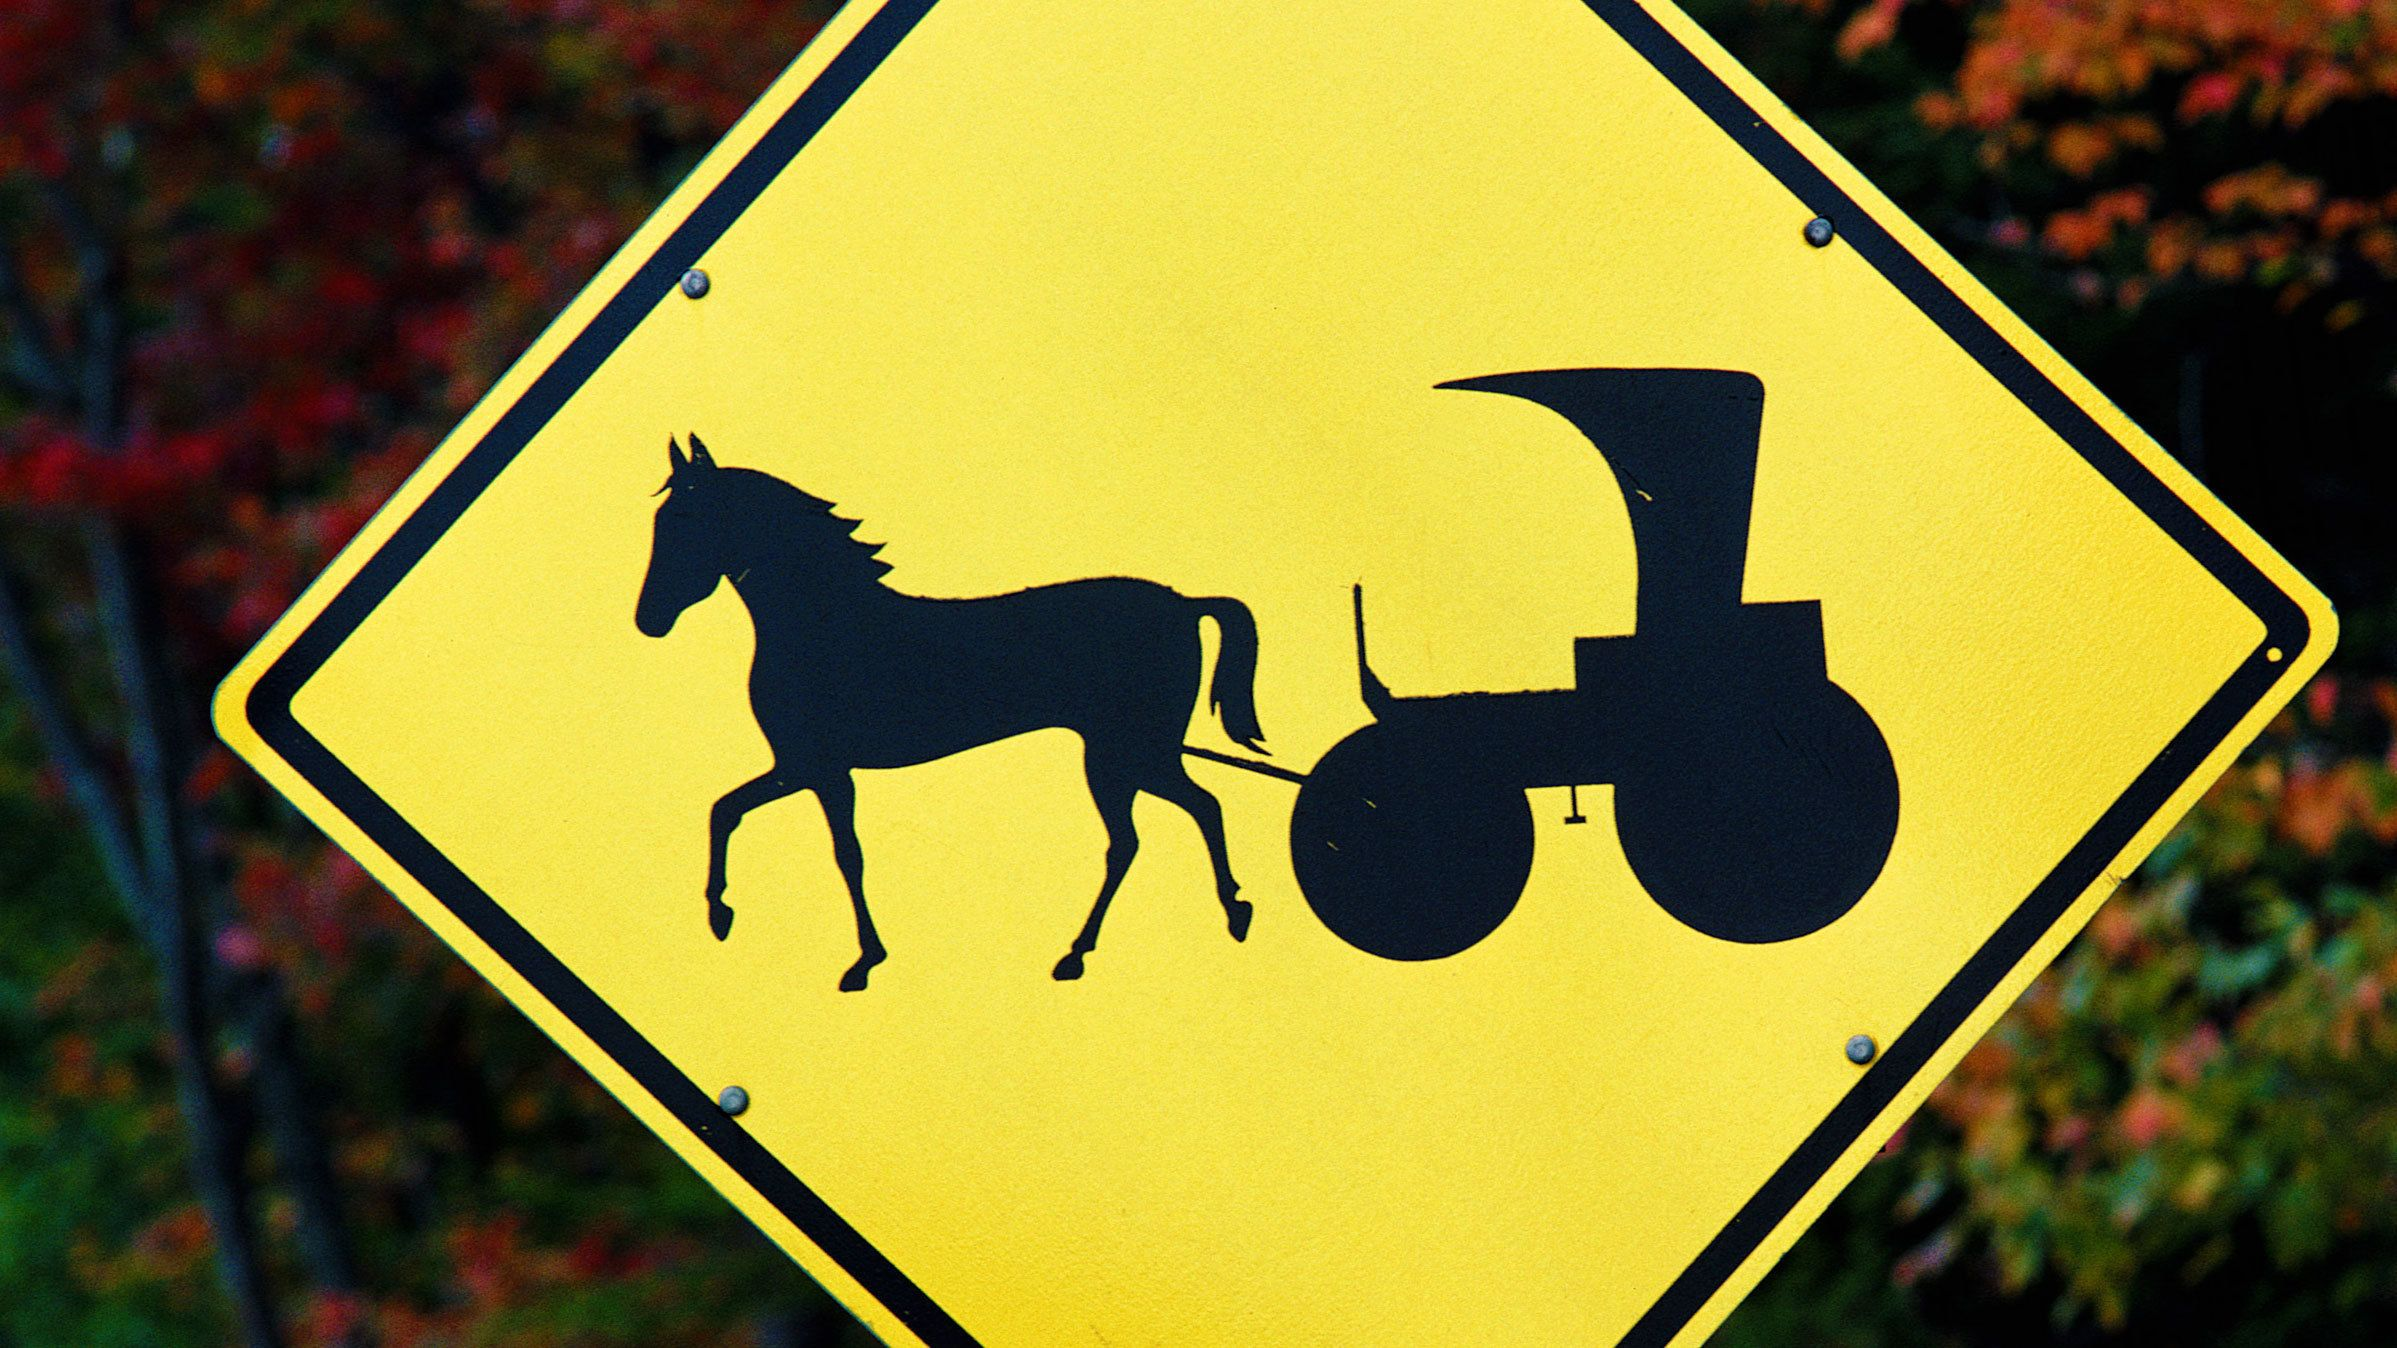 Horse and buggy street sign in Amish Country in Pennsylvania